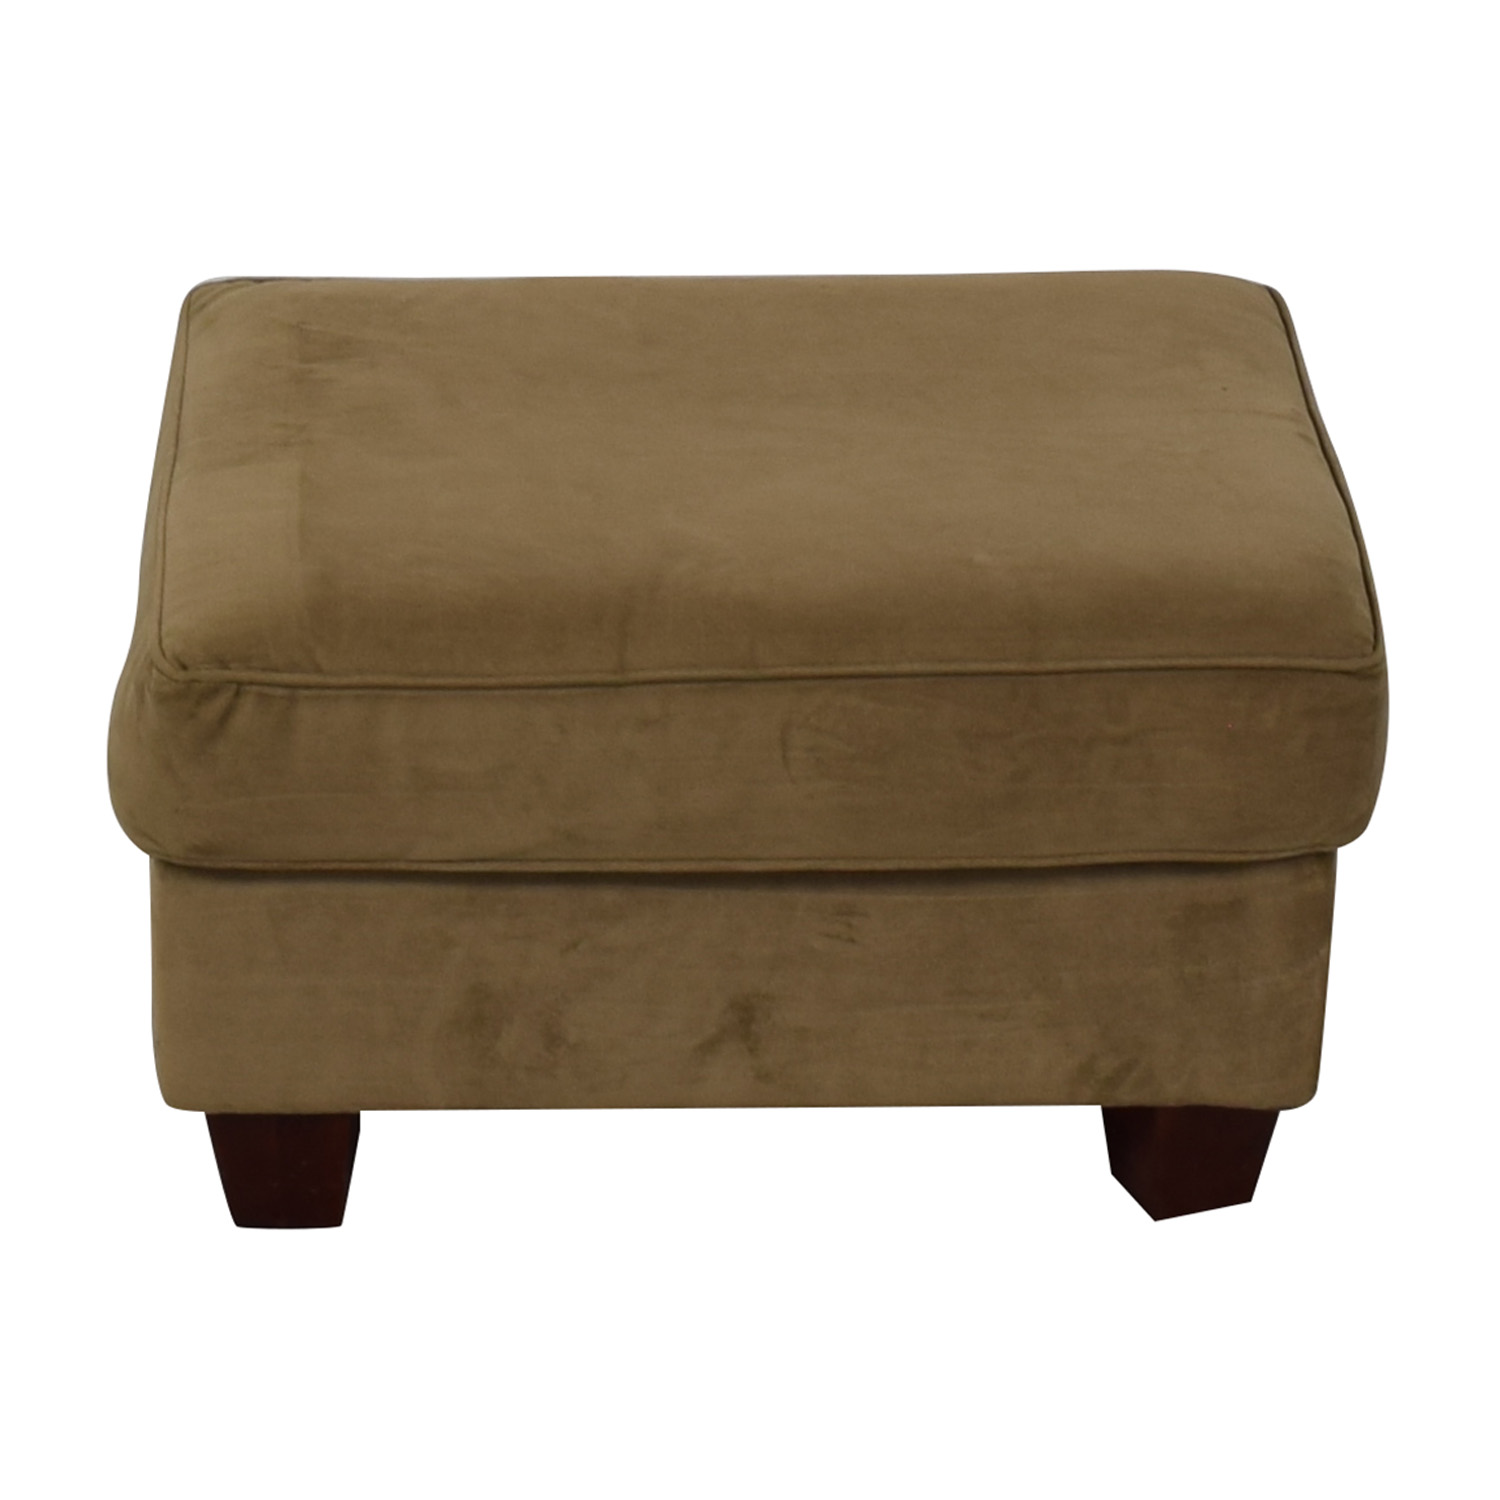 Bob's Discount Furniture Bob's Discount Furniture Bella Tan Ottoman nyc